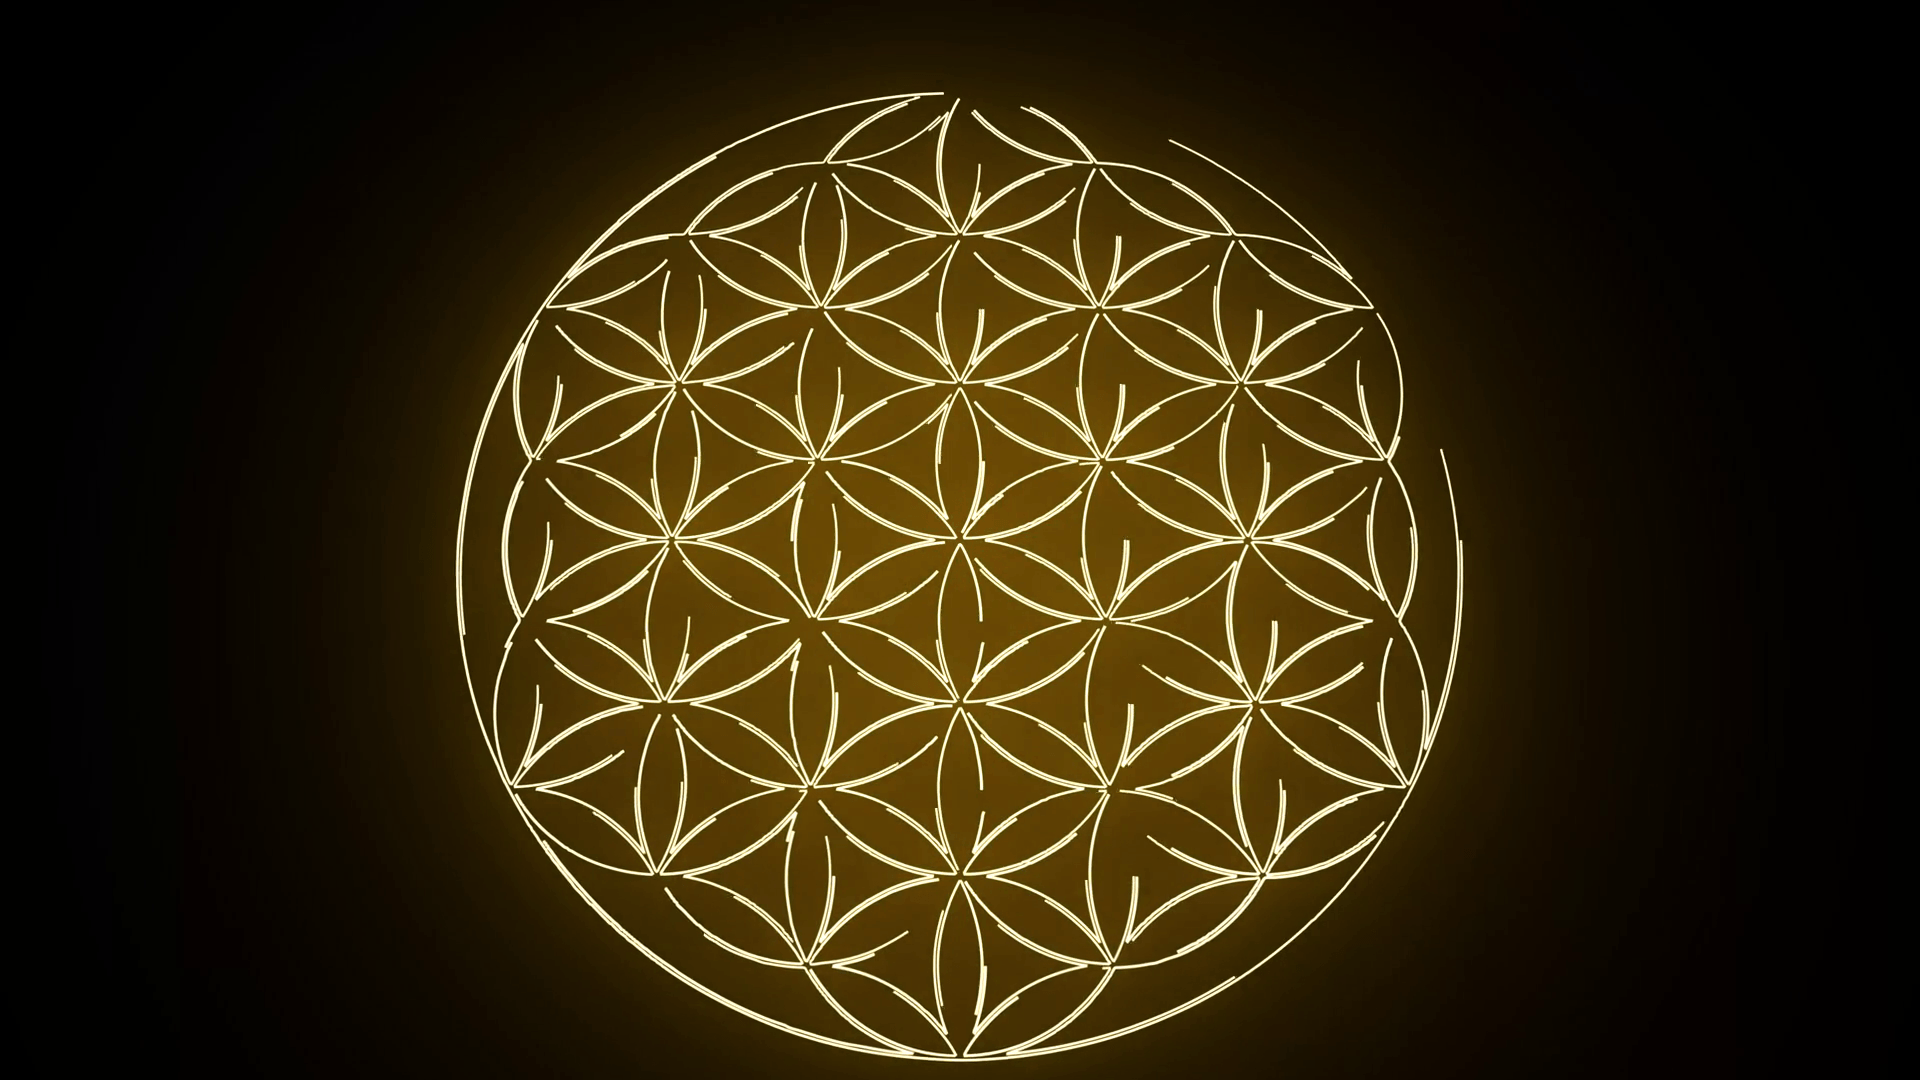 Flower Of Life Wallpapers Top Free Flower Of Life Backgrounds Wallpaperaccess